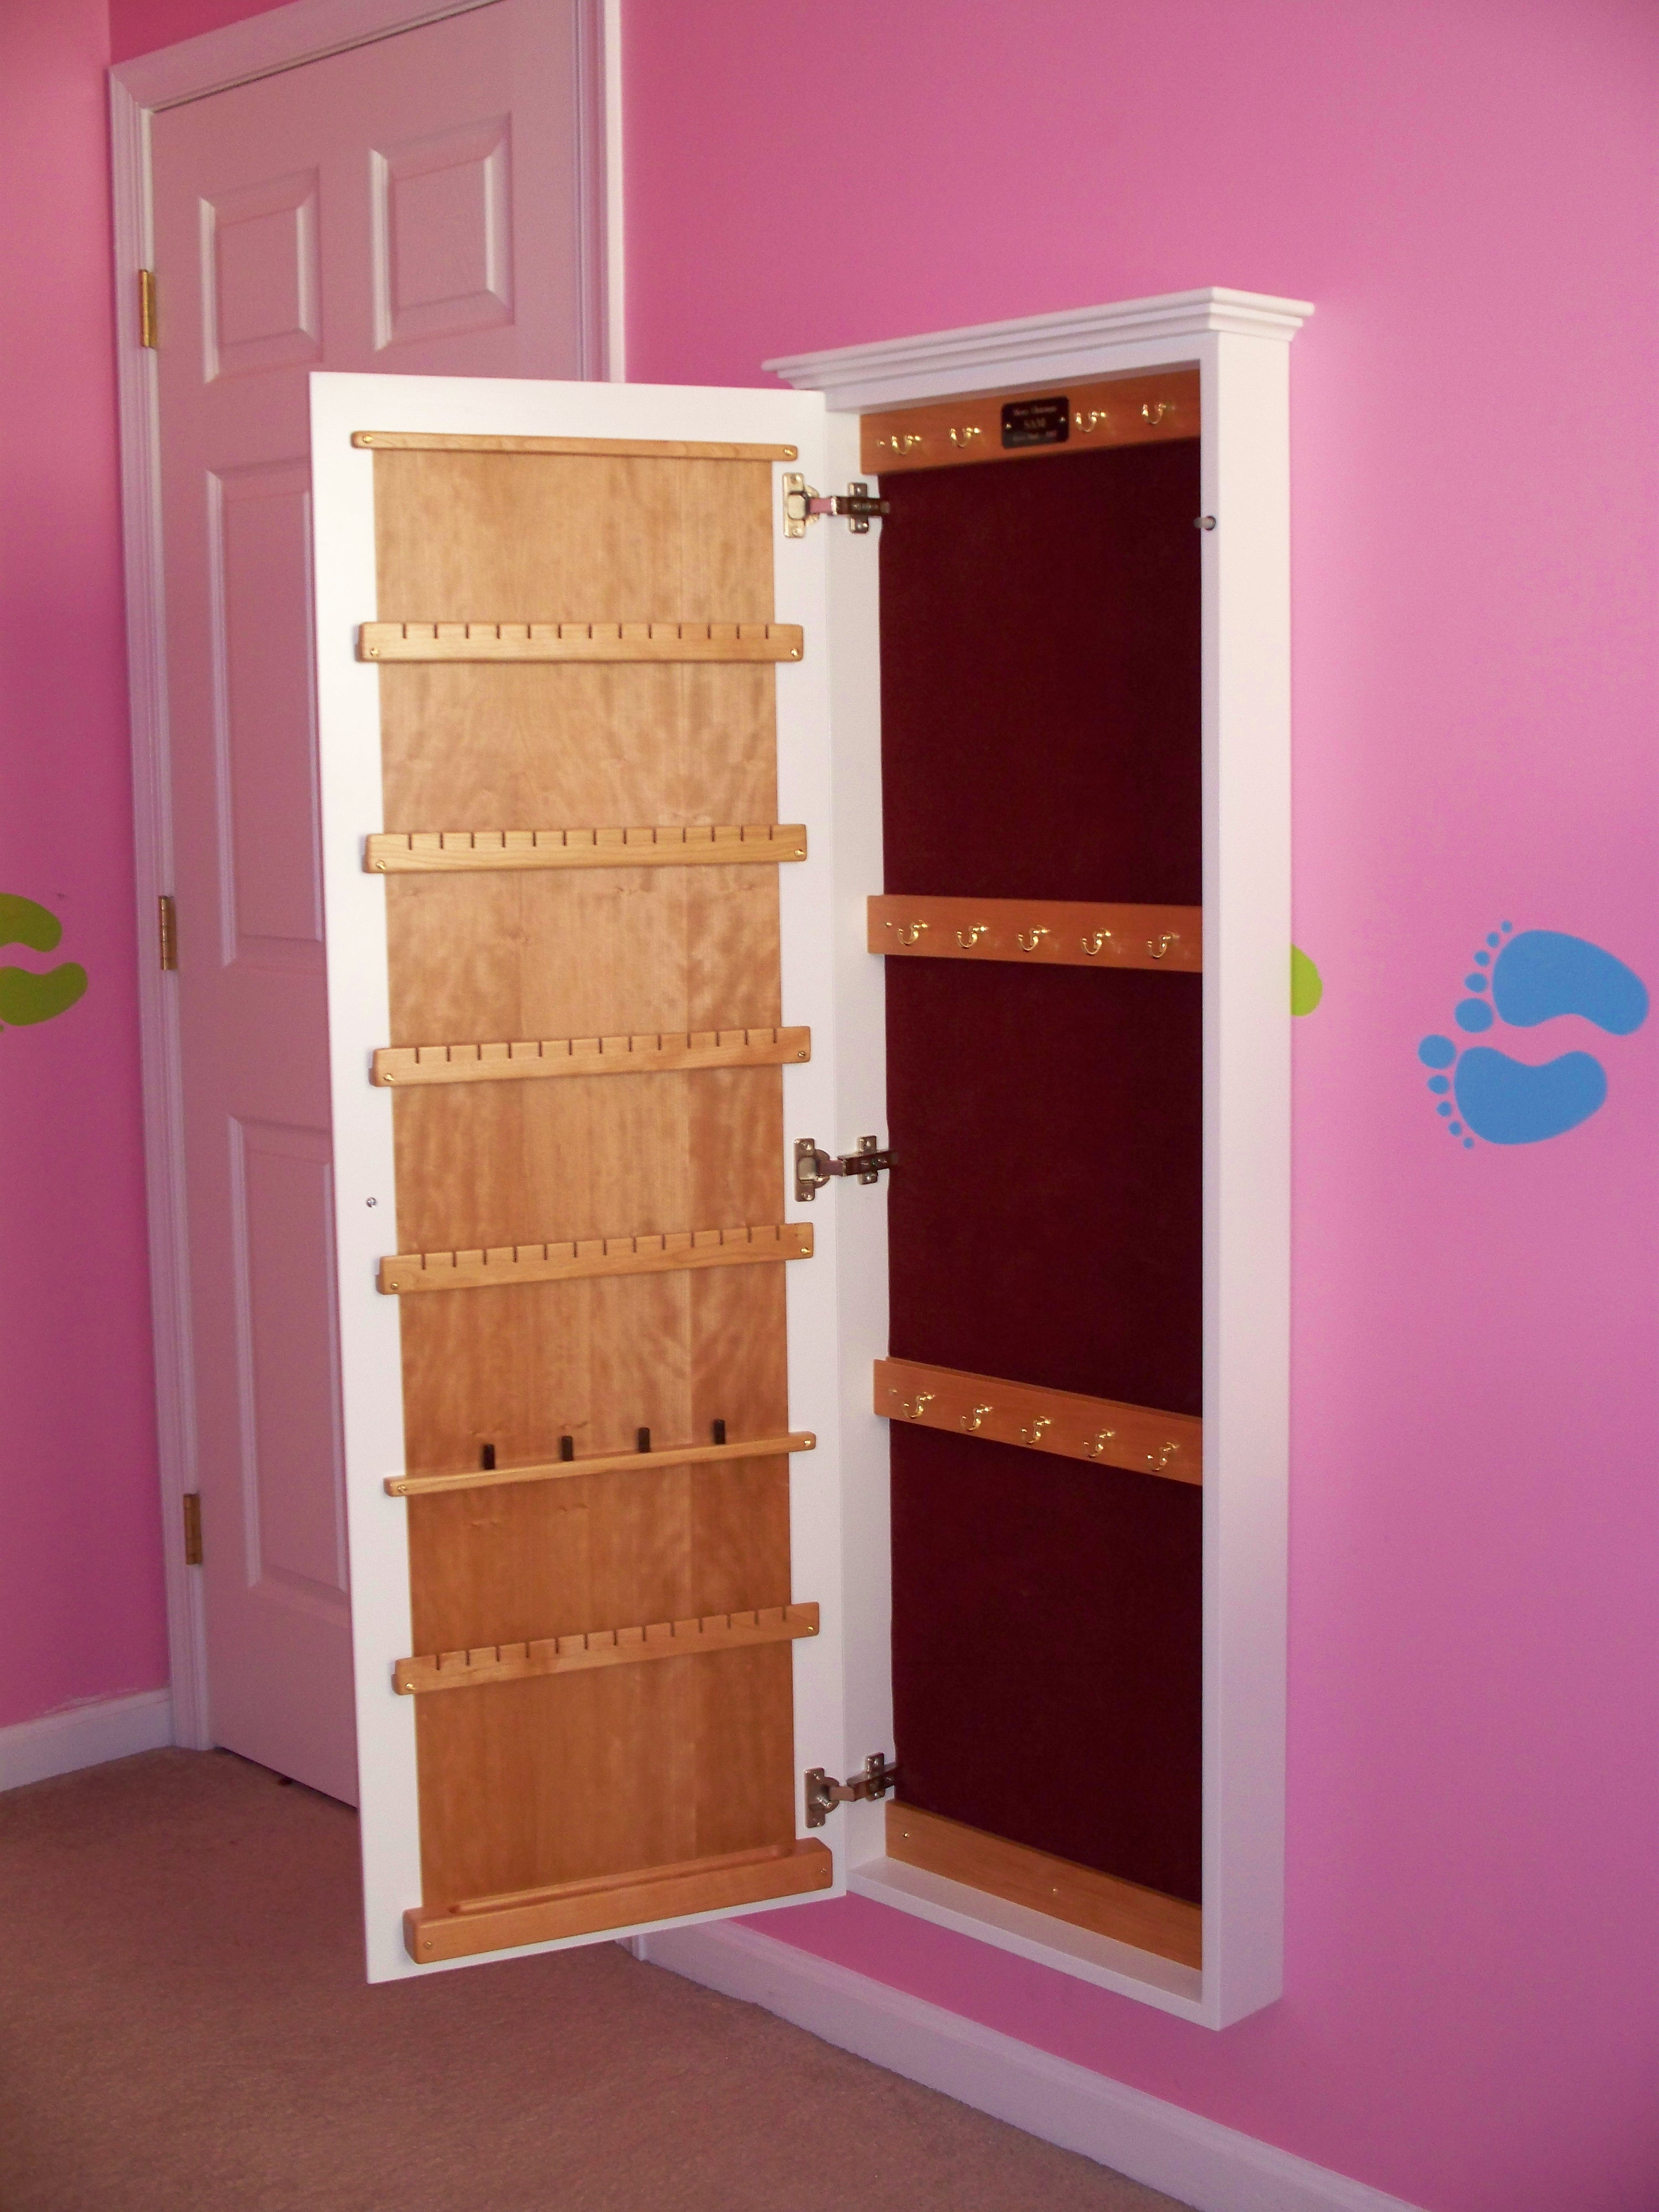 Built In Wall Jewelry Cabinet. Pictured mtbmug Source:Flickr